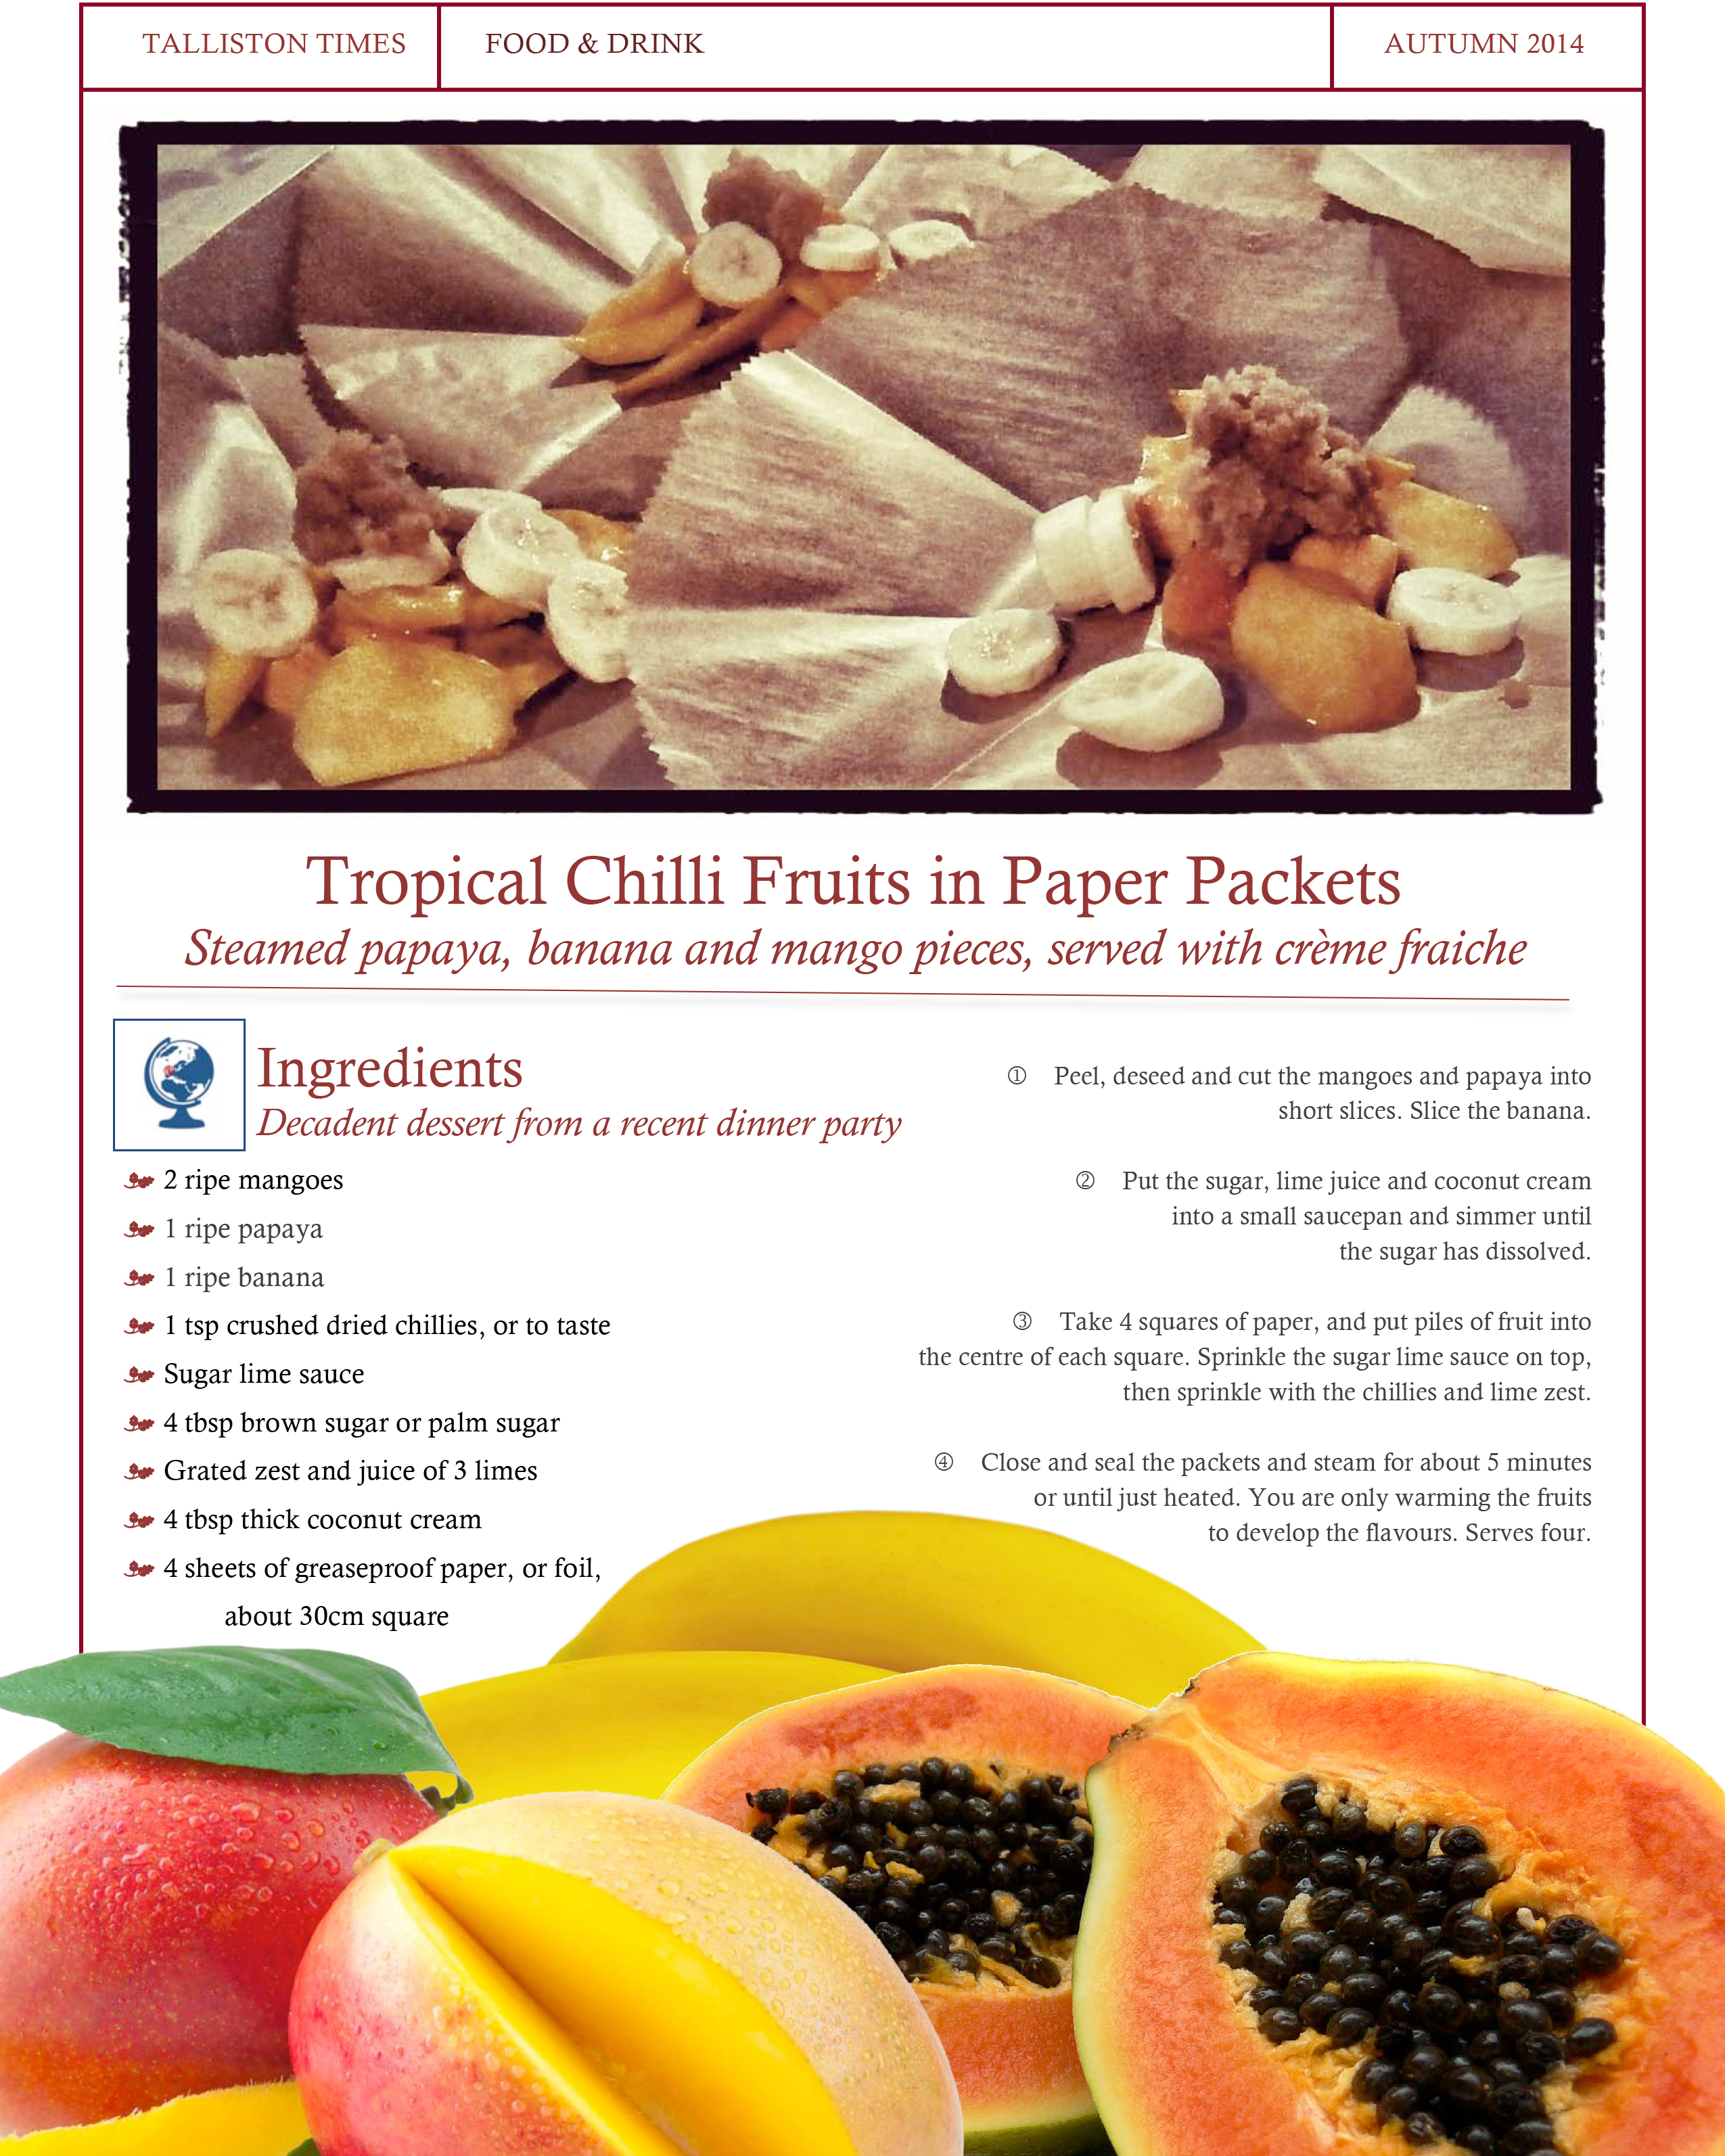 Recipe #6 Tropical Chilli Fruits